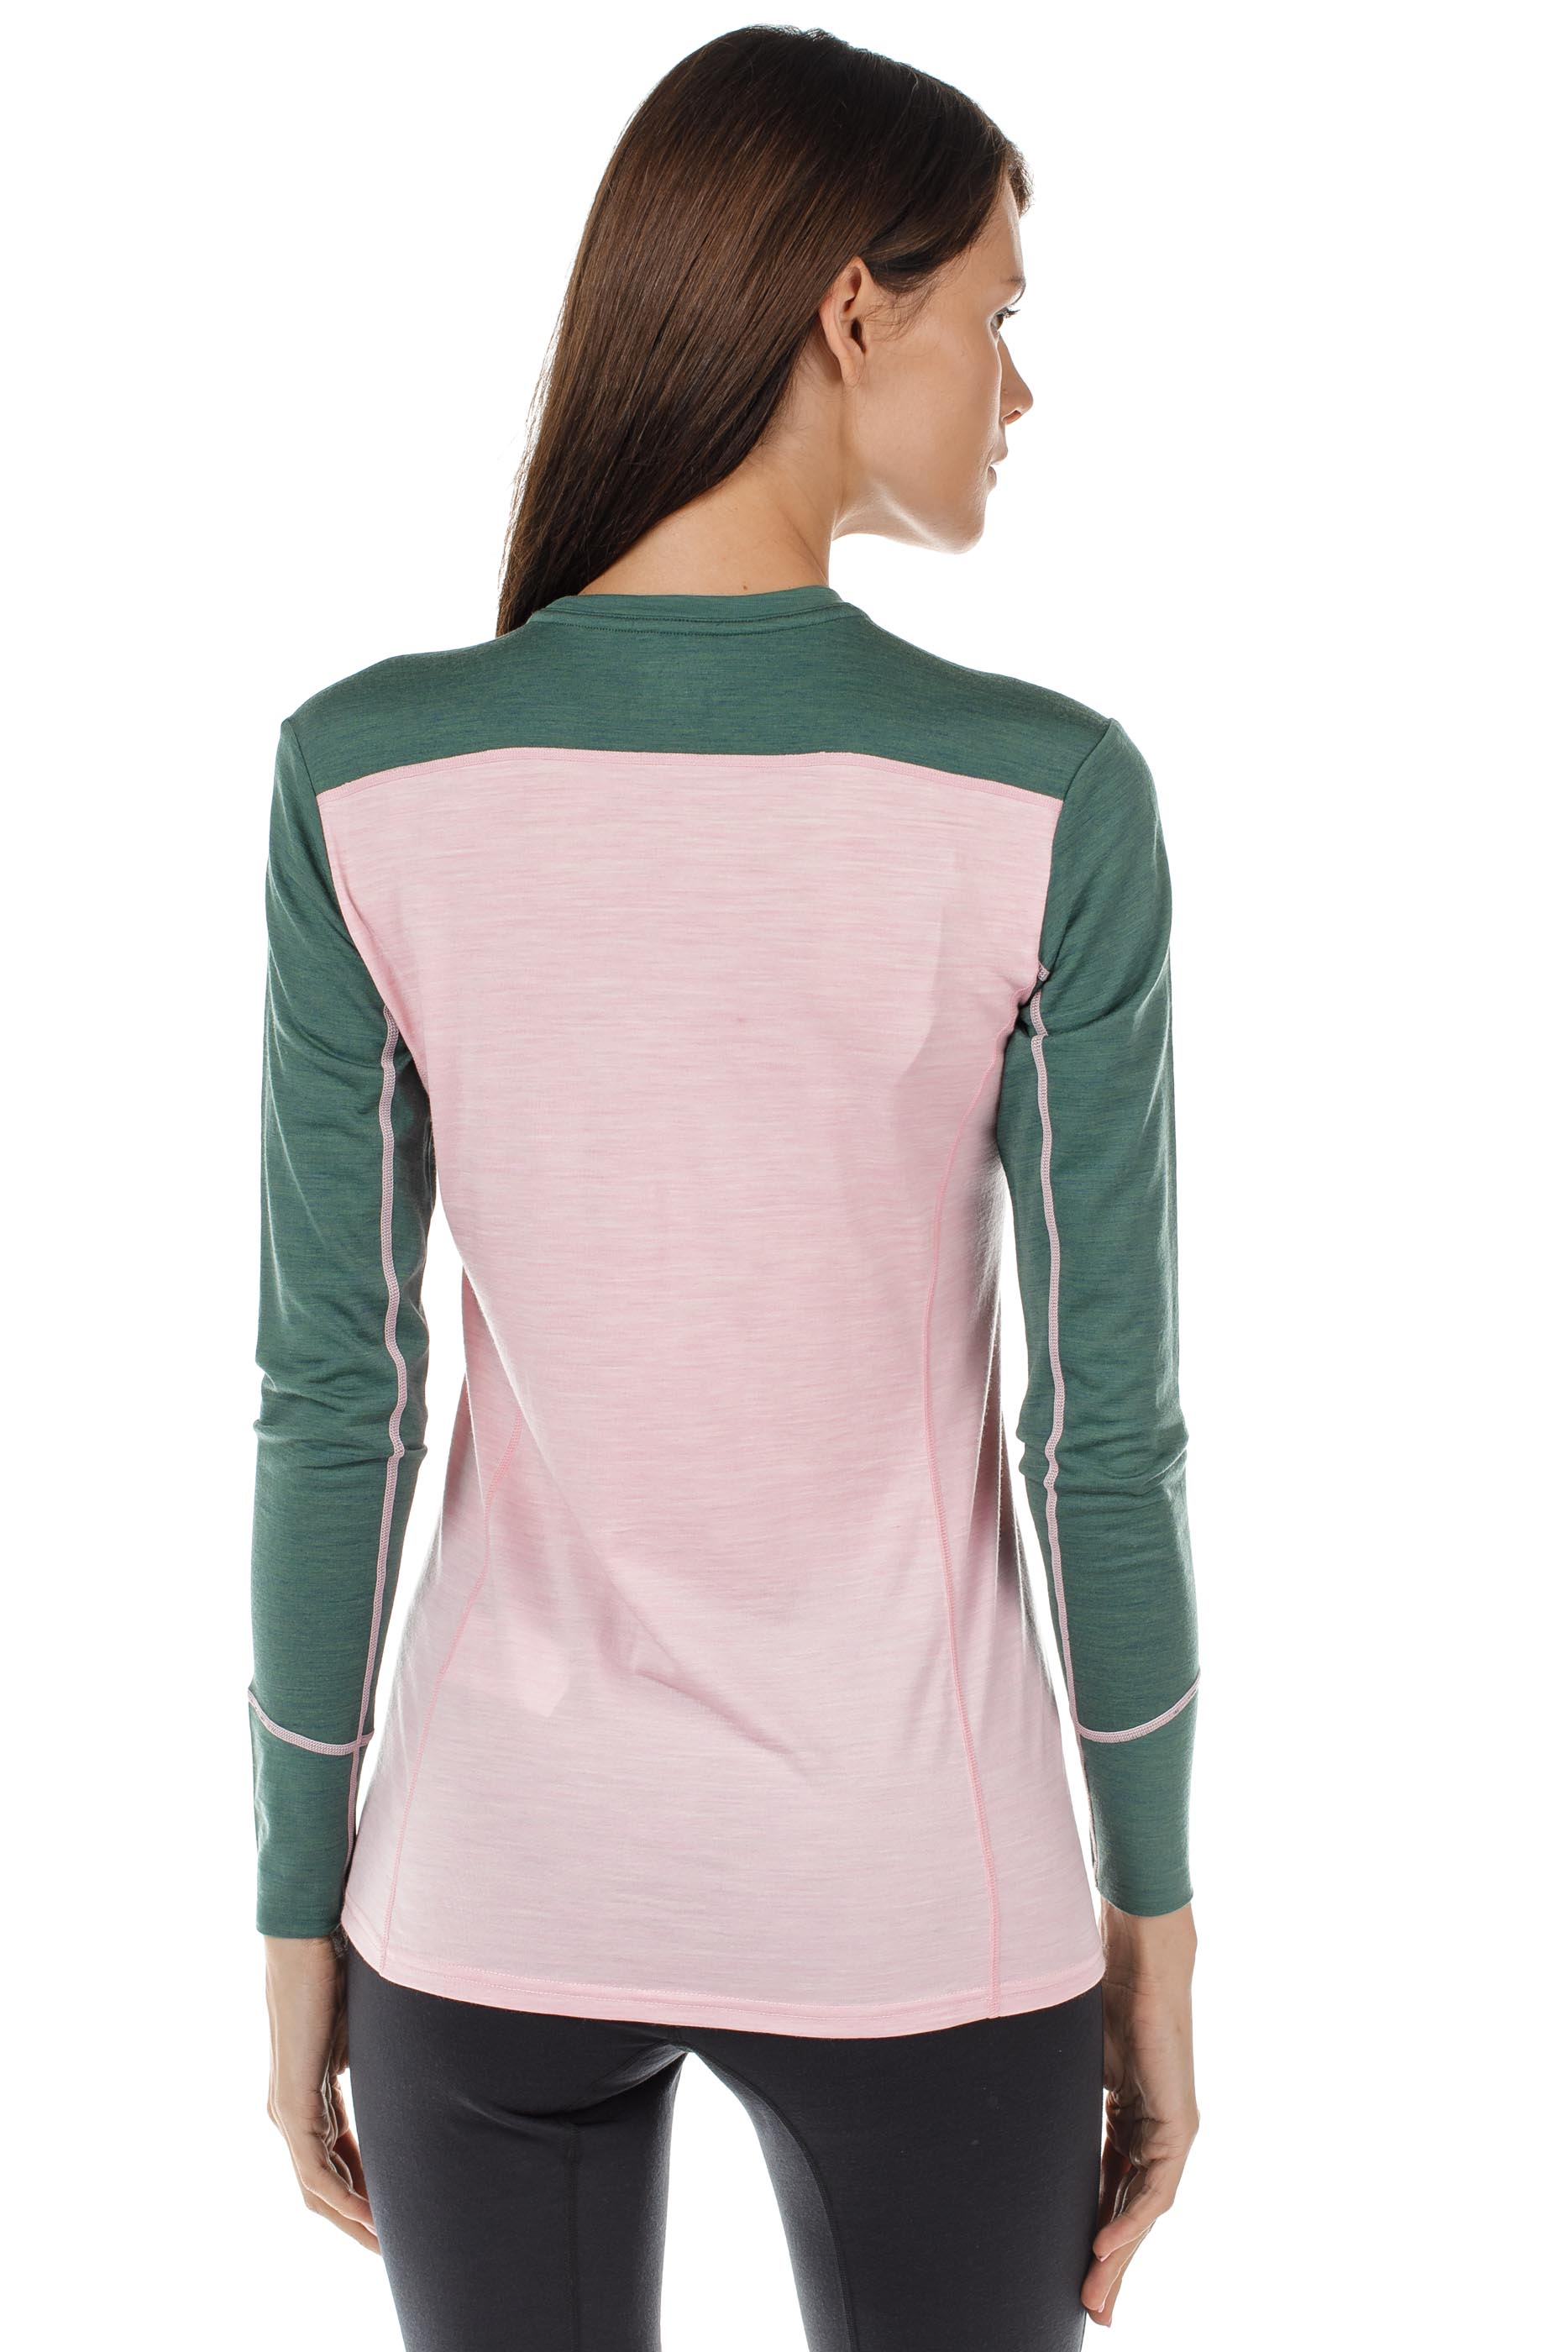 Футболка женская Norrona Wool Round Neck Candy Pink - Фото 4 большая